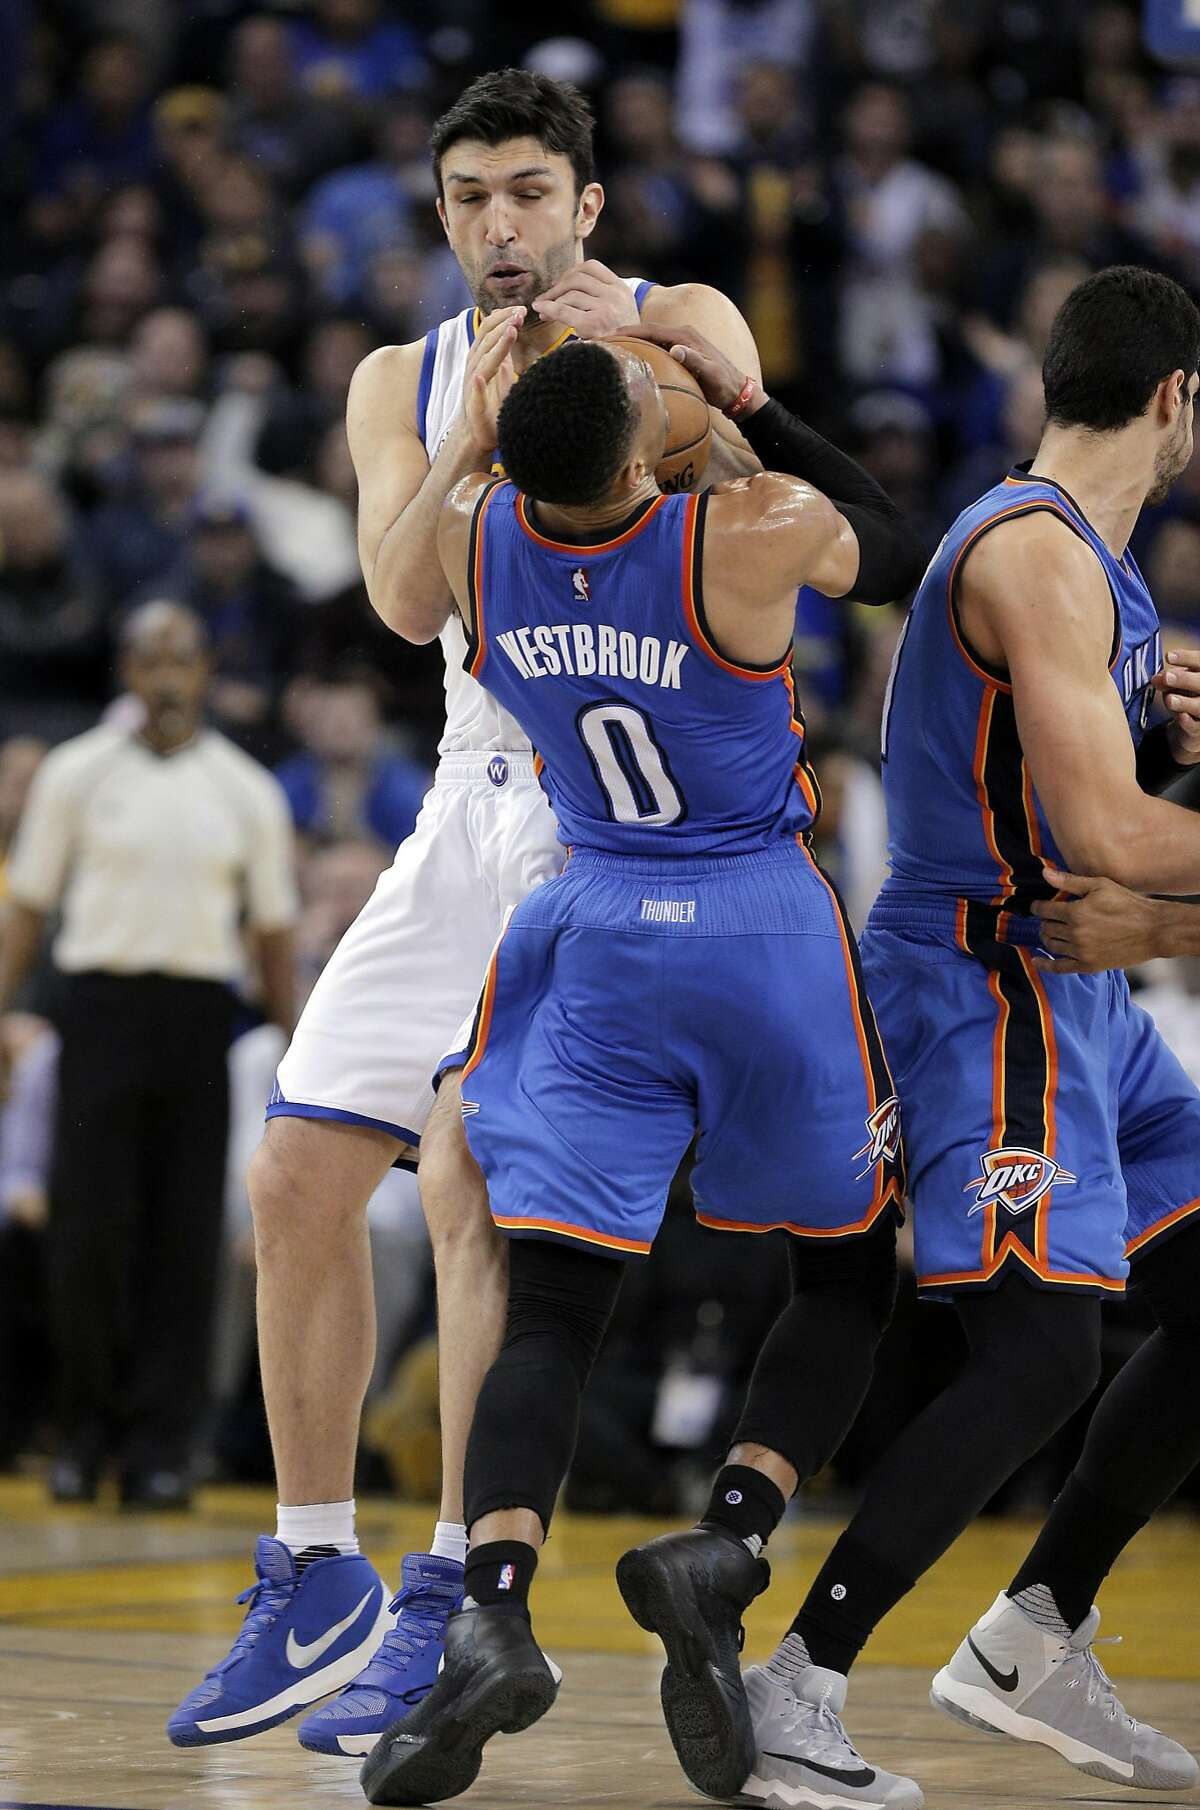 Russell Westbrook (0) collides with Zaza Pachulia (27) which was assessed a flagrant 1 against Pachulia as the Golden State Warriors played the Oklahoma City Thunder at Oracle Arena in Oakland, Calif., on Wednesday, January 18, 2017.